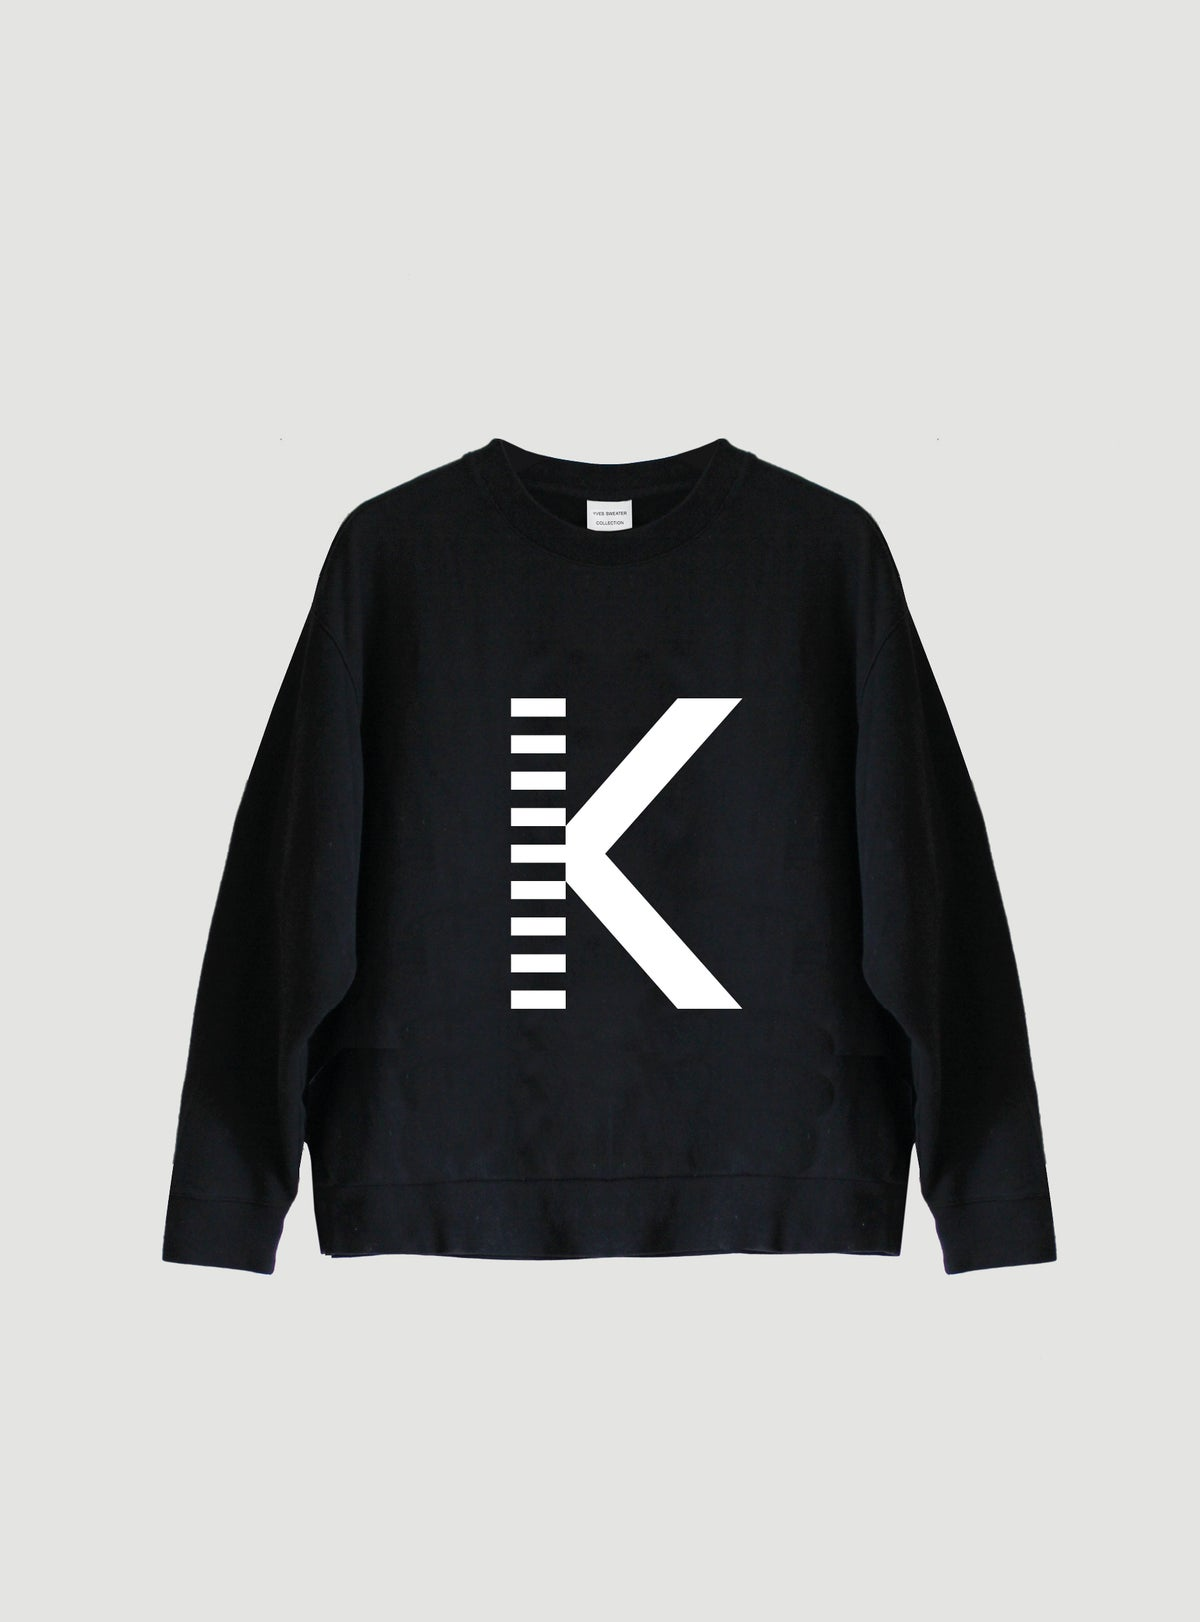 Image of K Sweater